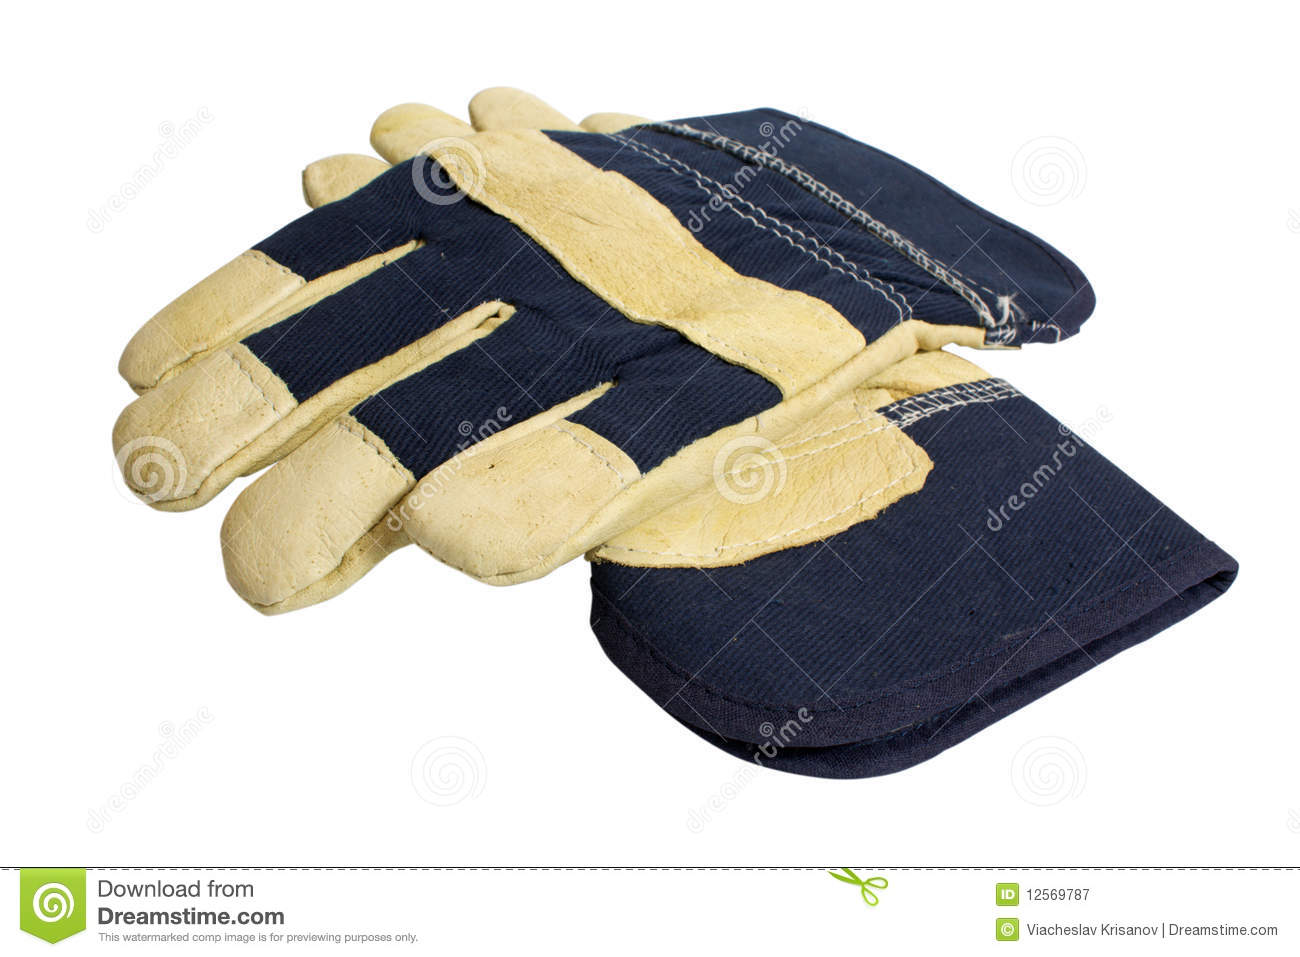 Denim Work Gloves Royalty Free Stock Photography   Image  12569787